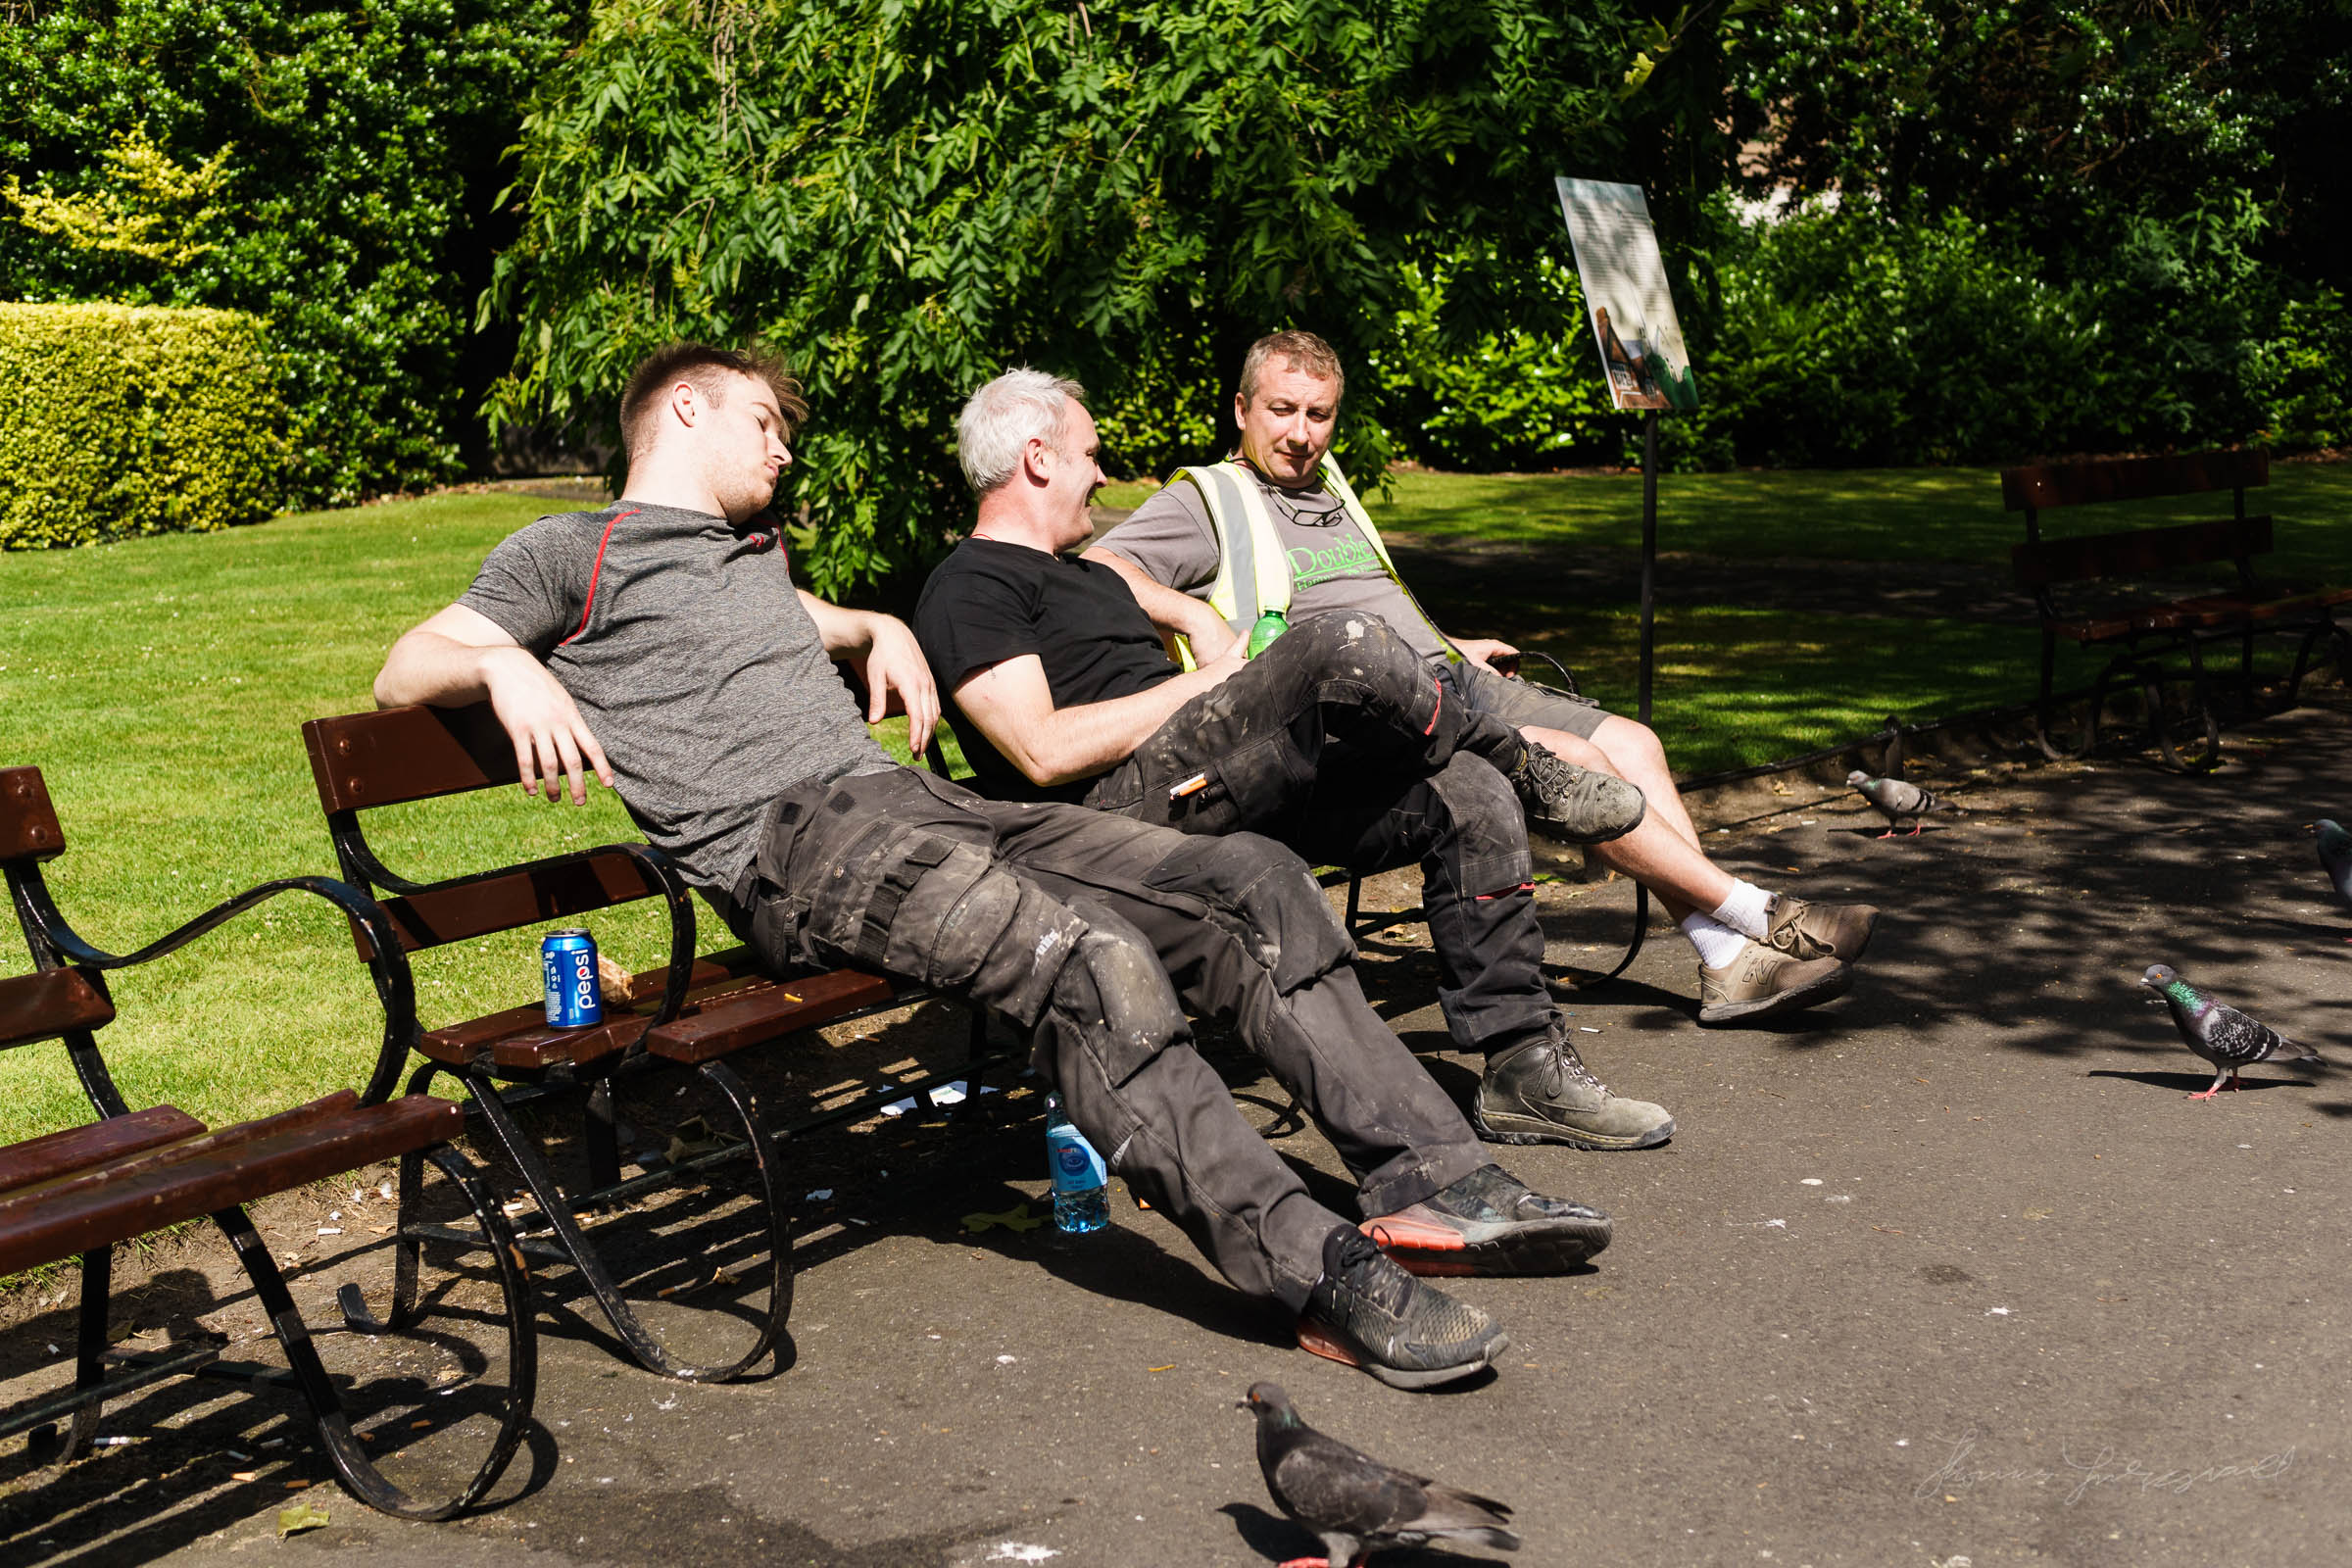 People sitting on a bench in the park - Street Photo Diary